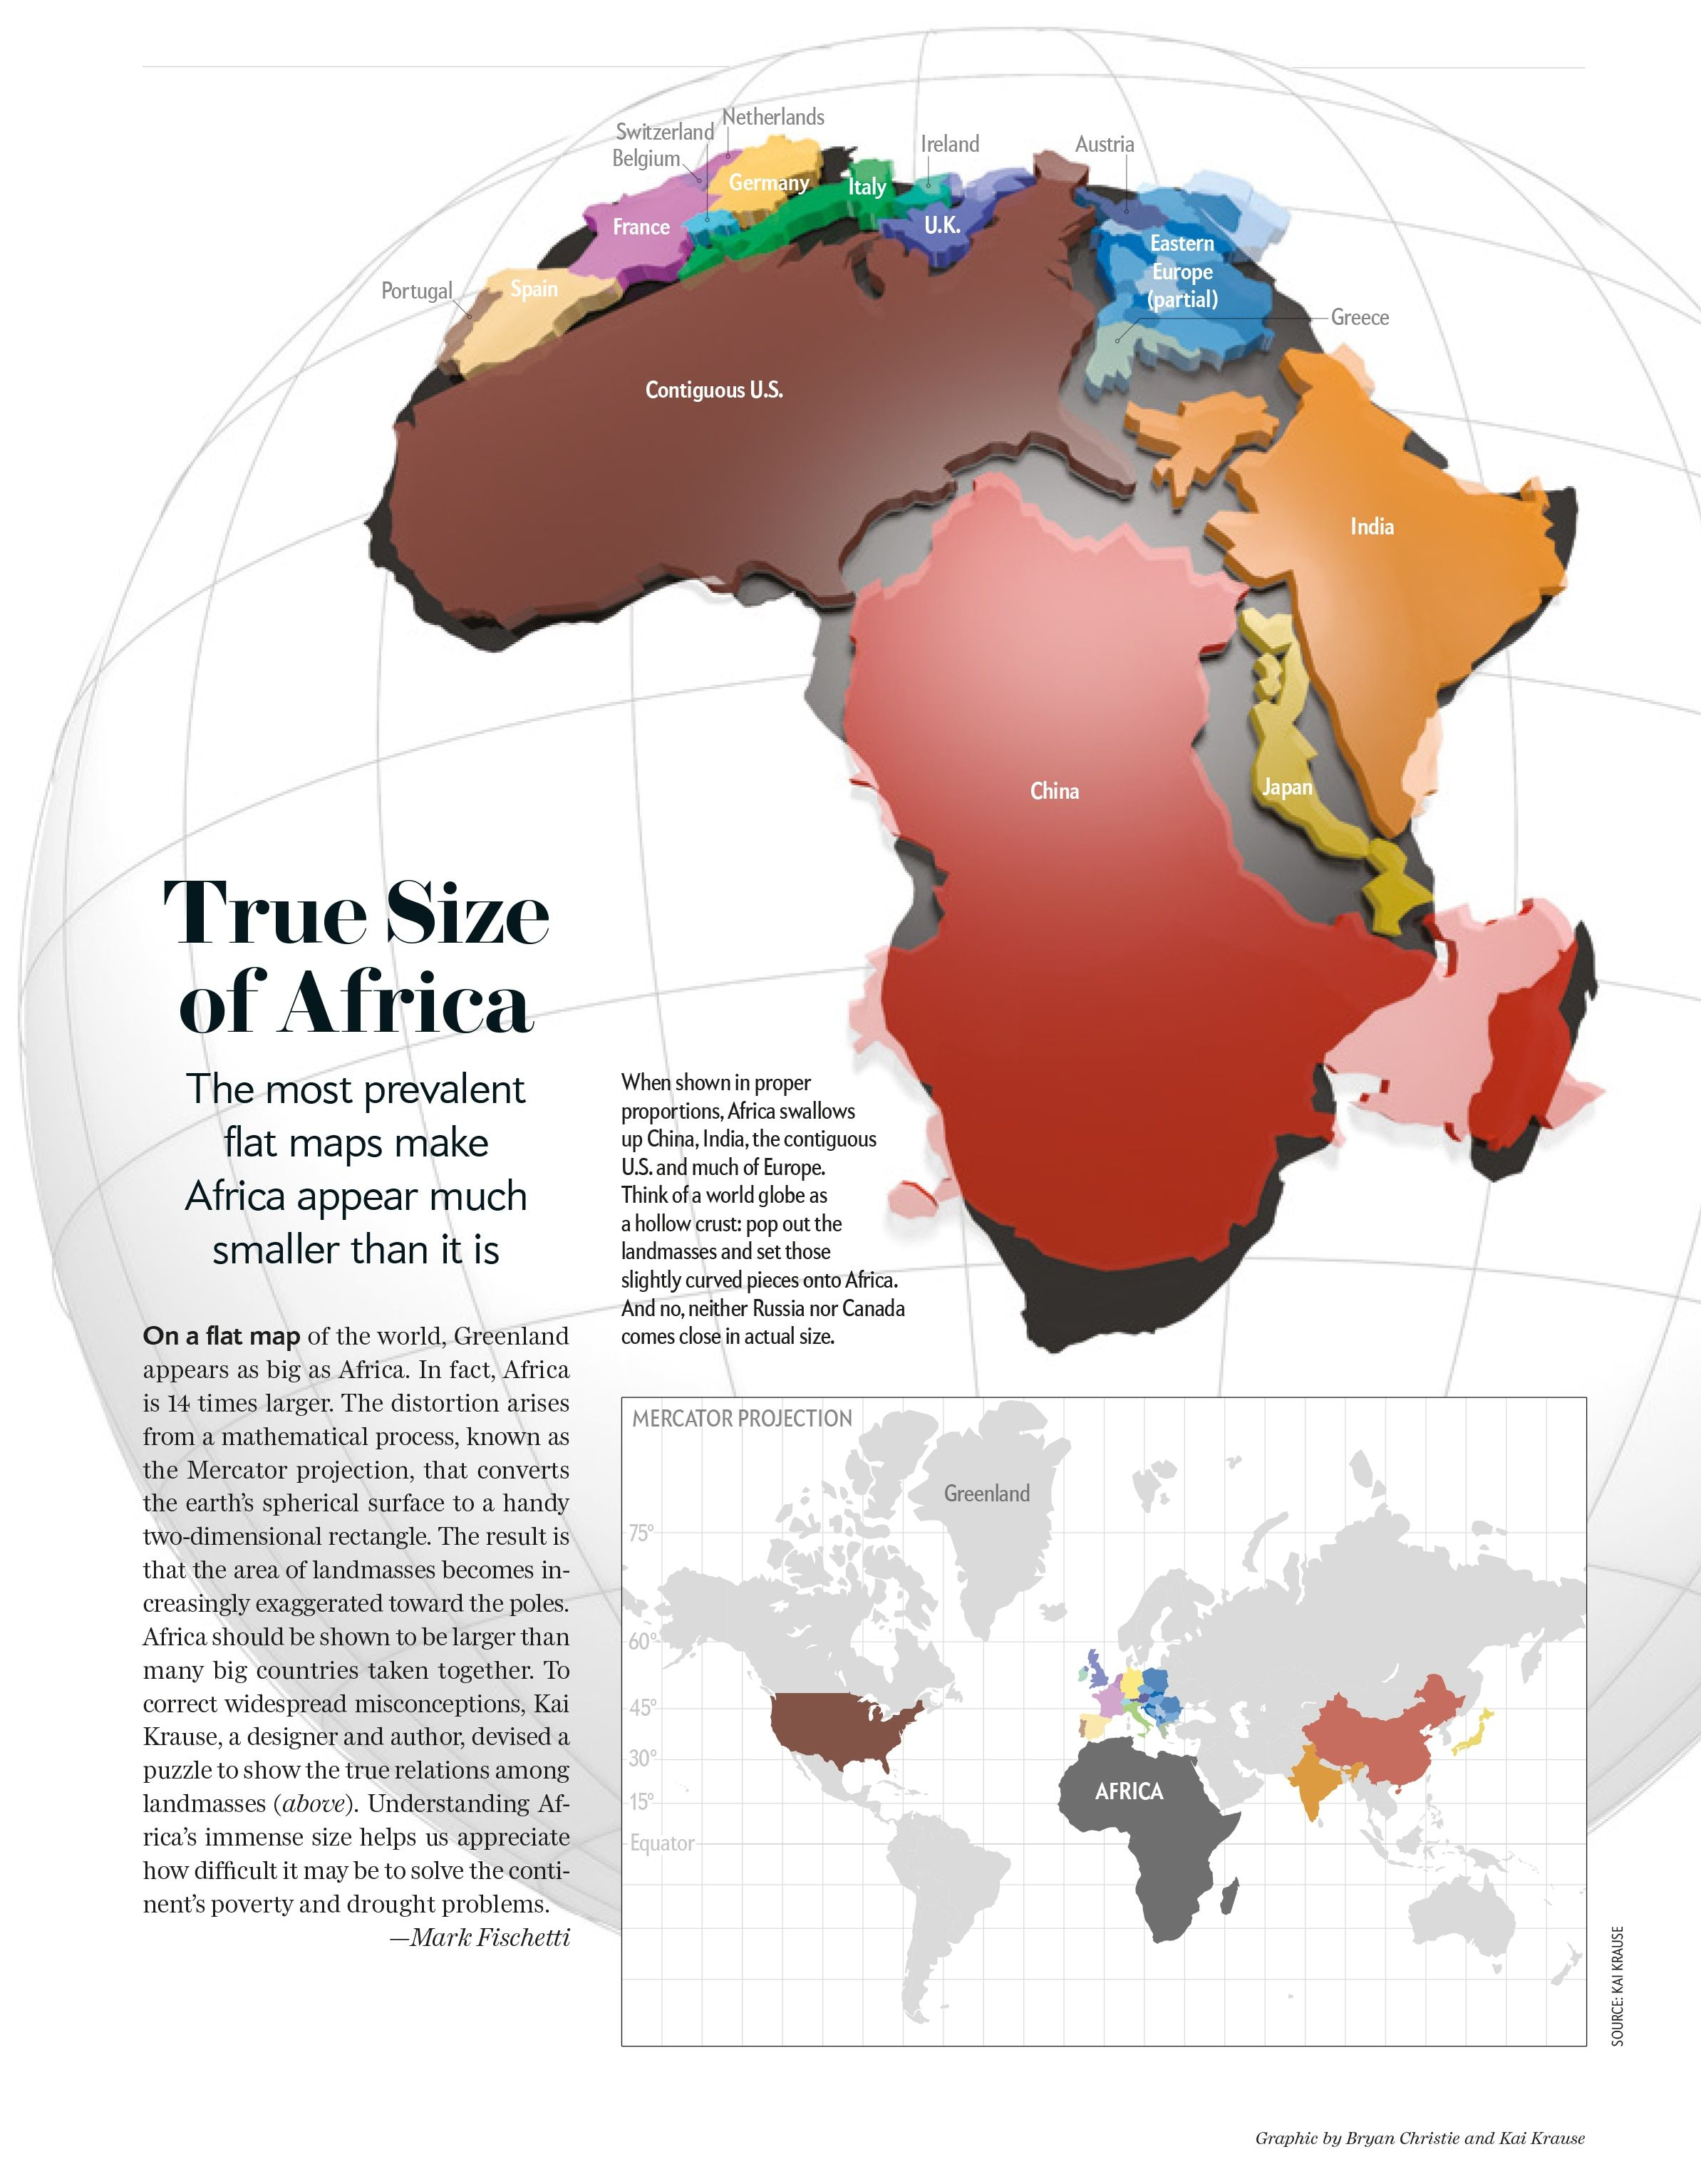 Africa Dwarfs China Europe and the US Scientific American